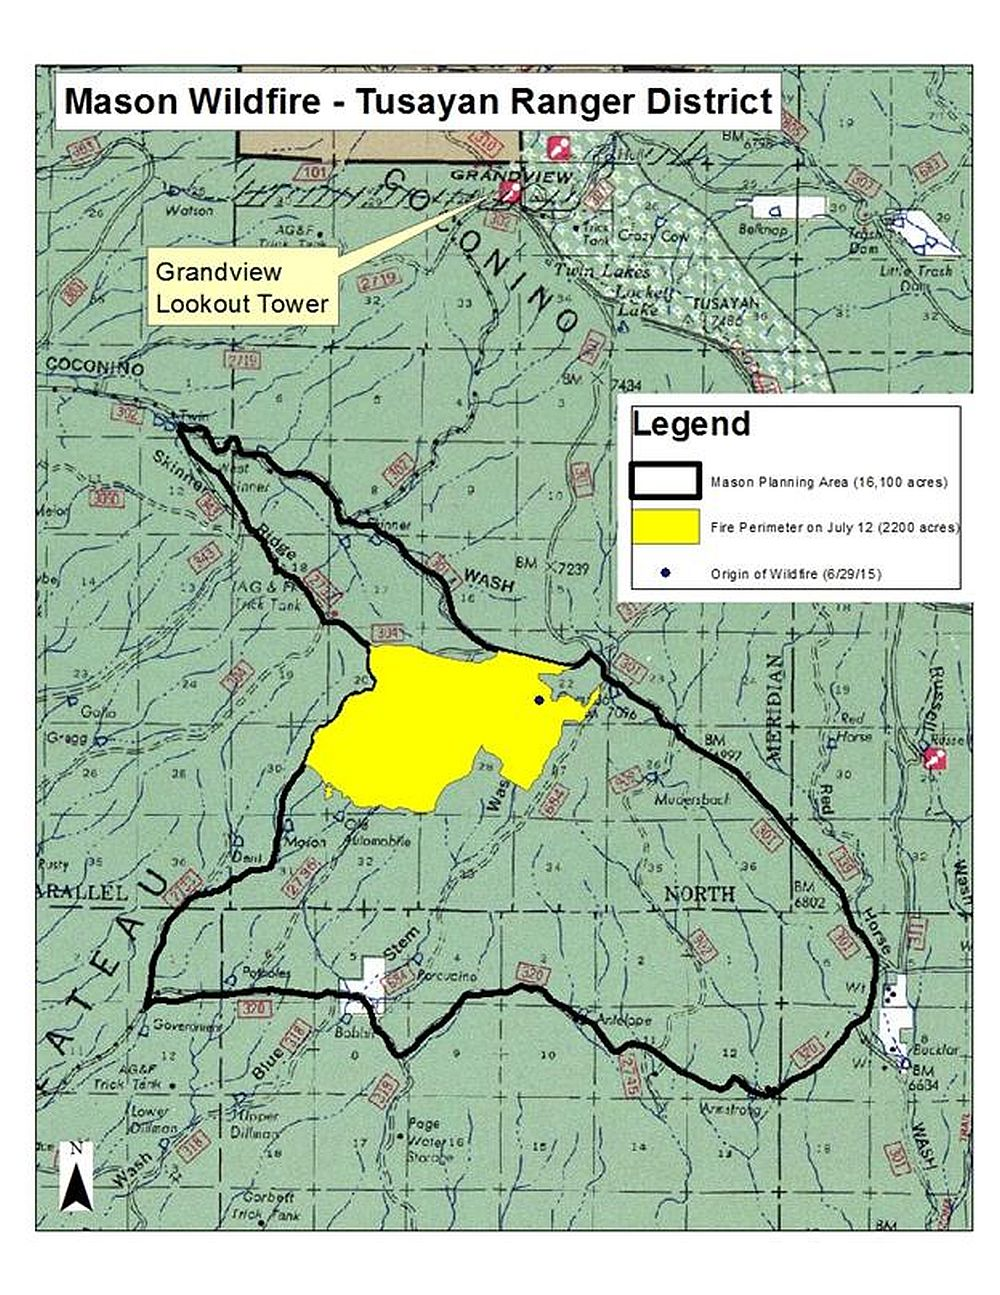 Map Showing The Fire Burn Area Of The Combined Mason And Old Fires In Arizona